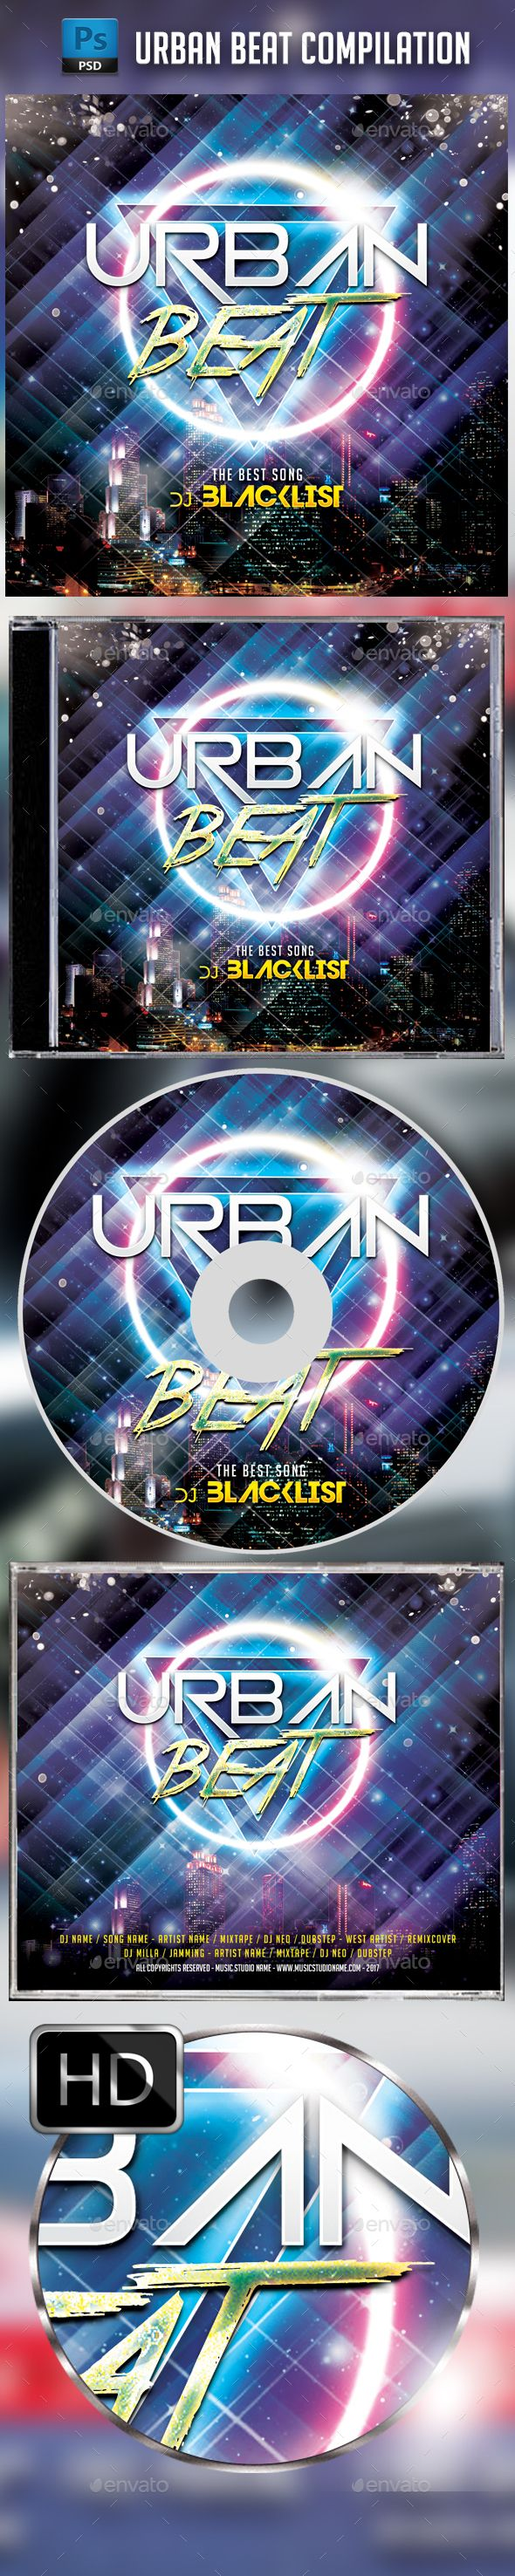 Urban Beat CD Cover Template - #CD & DVD #Artwork Print Templates Download here: https://graphicriver.net/item/urban-beat-cd-cover-template/19689745?ref=alena994